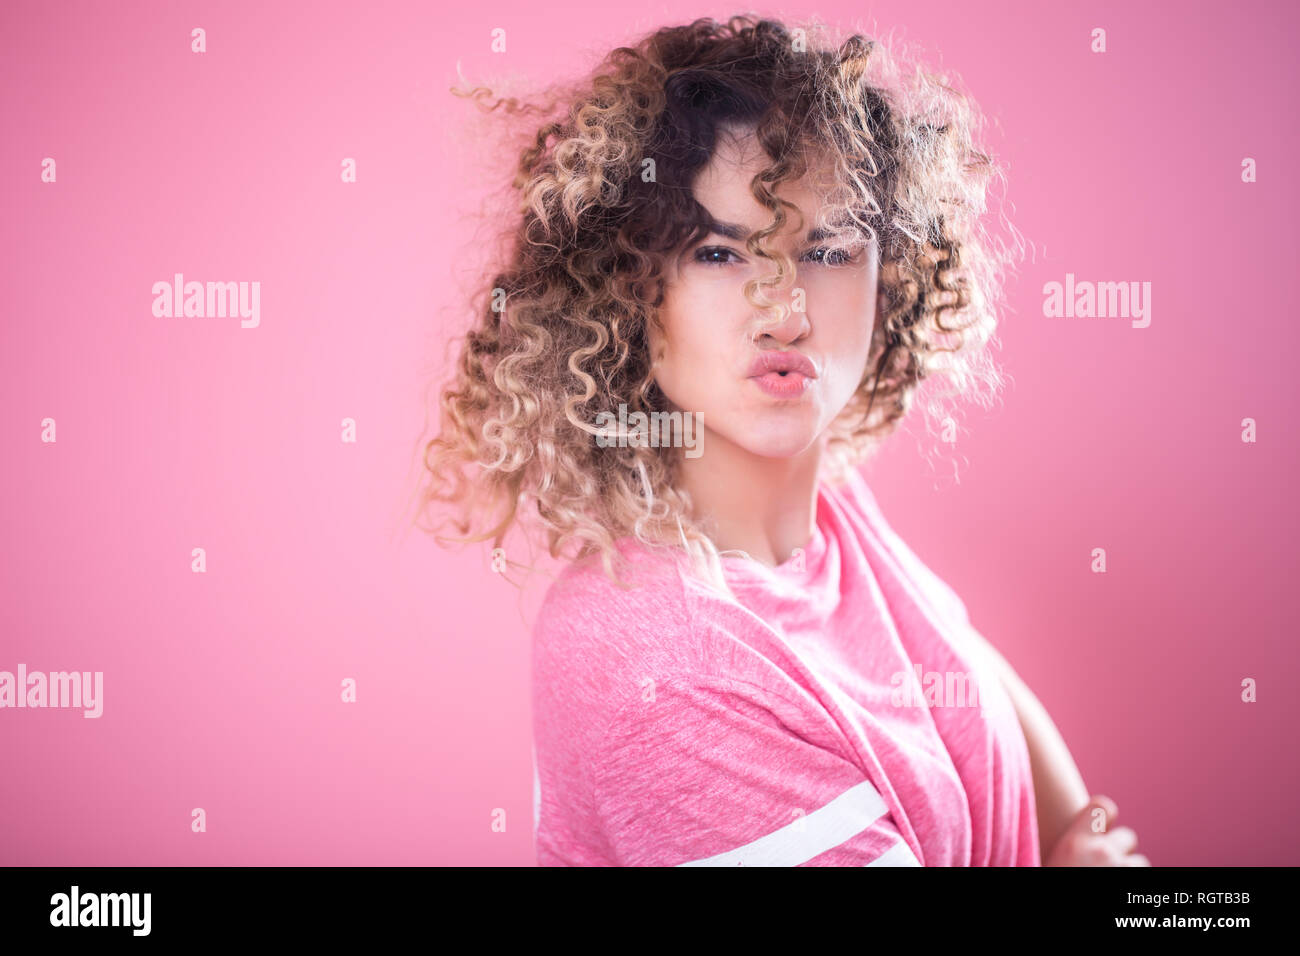 Portrait of a young emotional girl with pouted lips and curly hair in a loose pink t-shirt isolated on a pink background, place for text, emotion conc - Stock Image